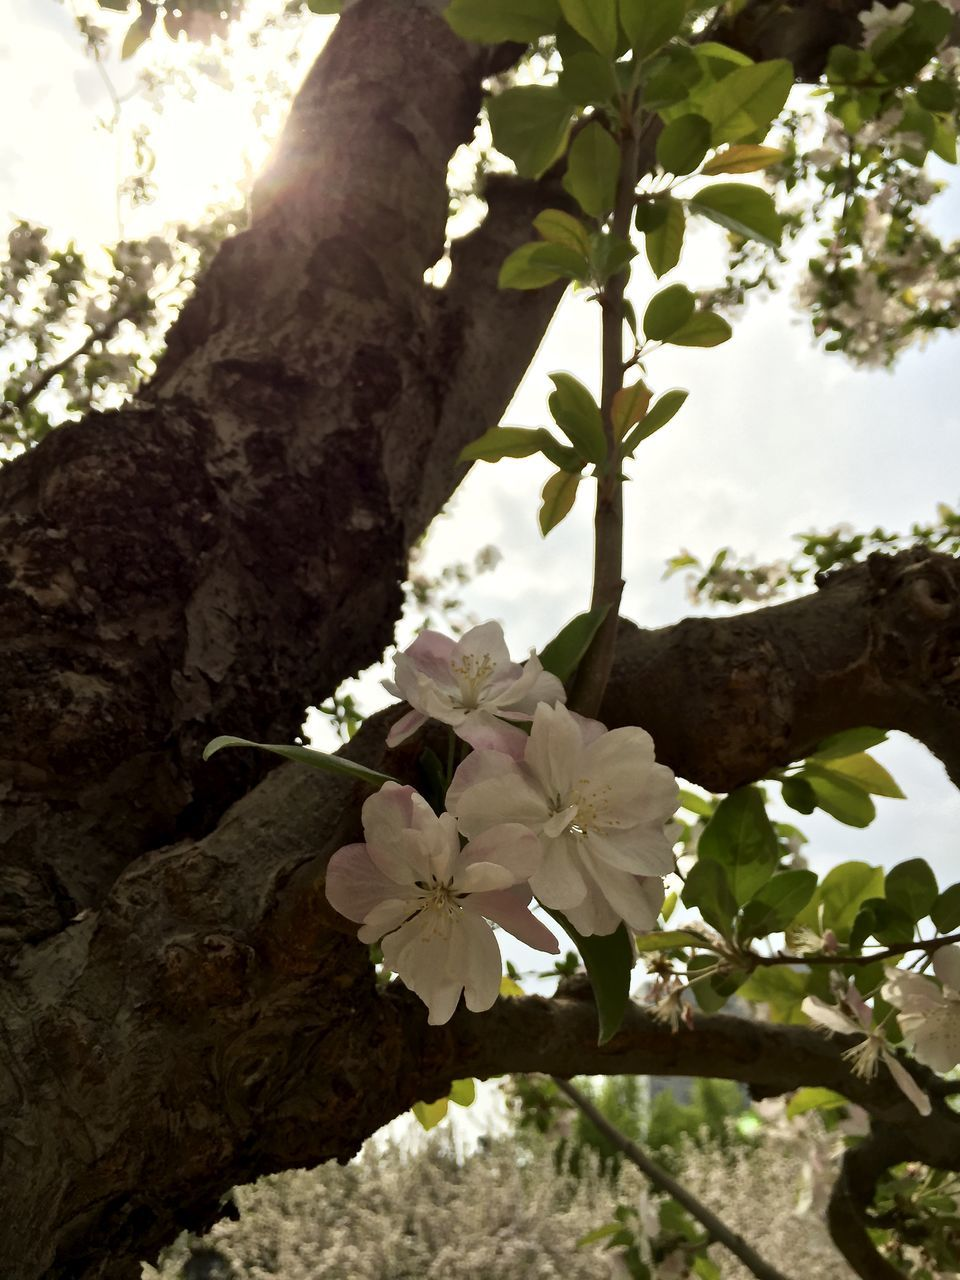 Low Angle View Of Flowers Blooming On Tree Branches